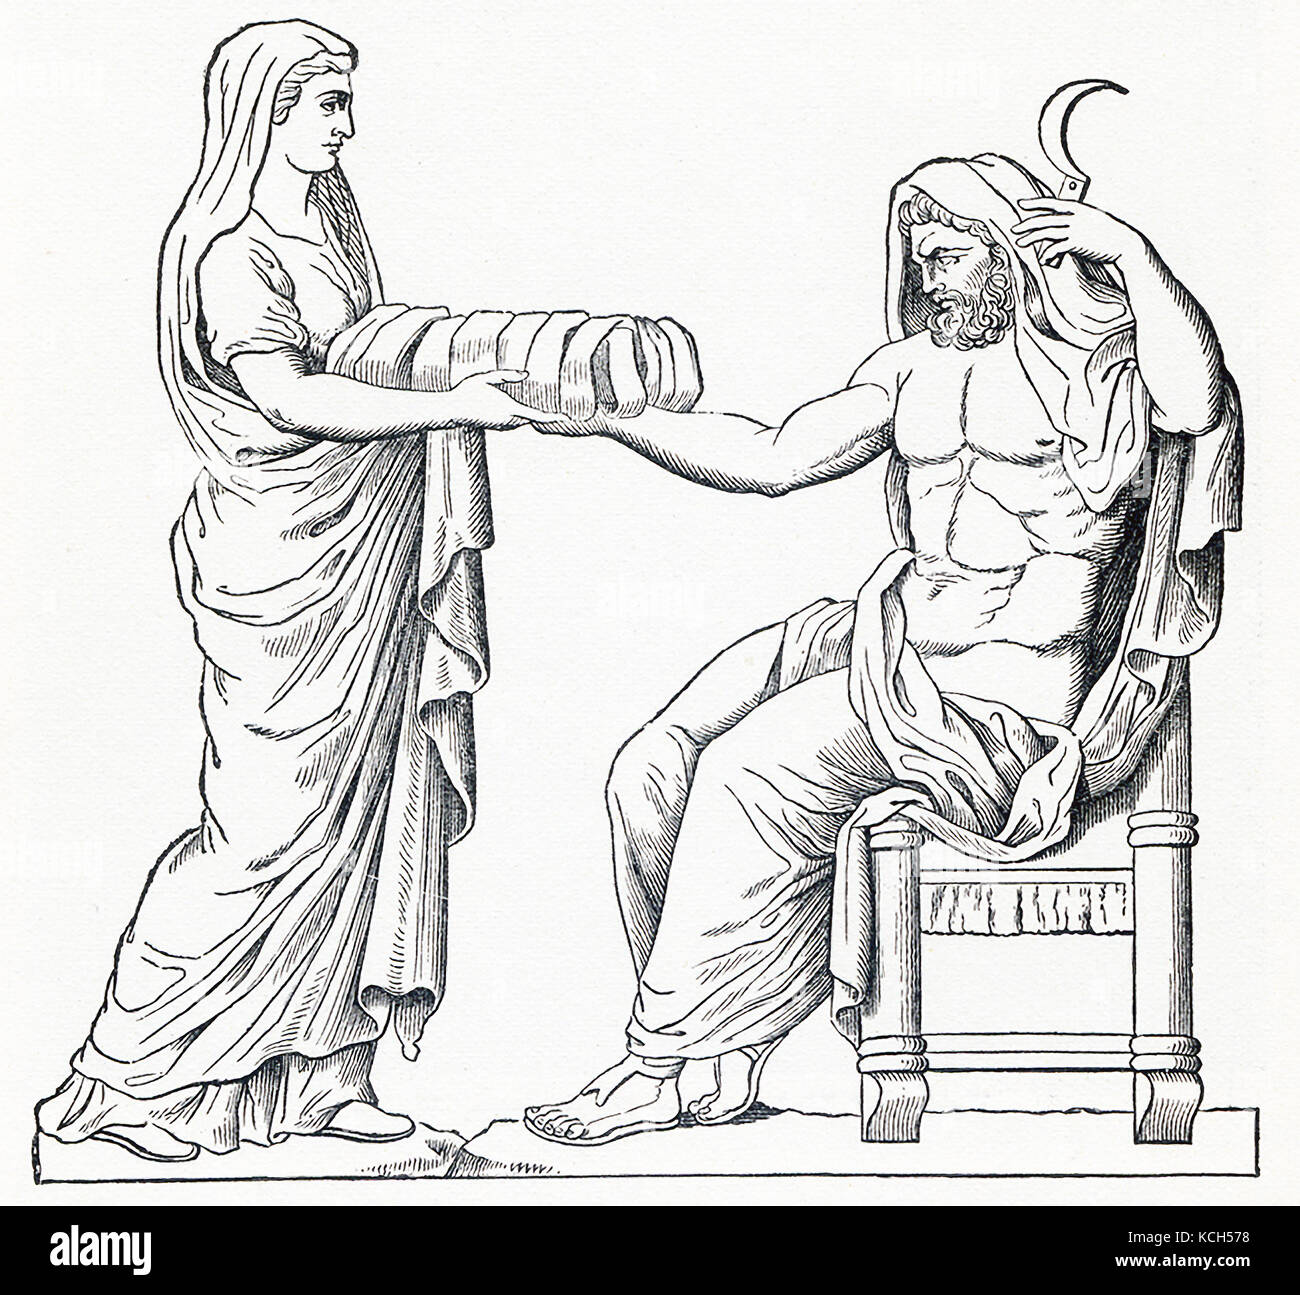 This illustration, dating to 1898, shows the ancient Greek/Roman deities Cronus and Rhea. According to Greek and - Stock Image